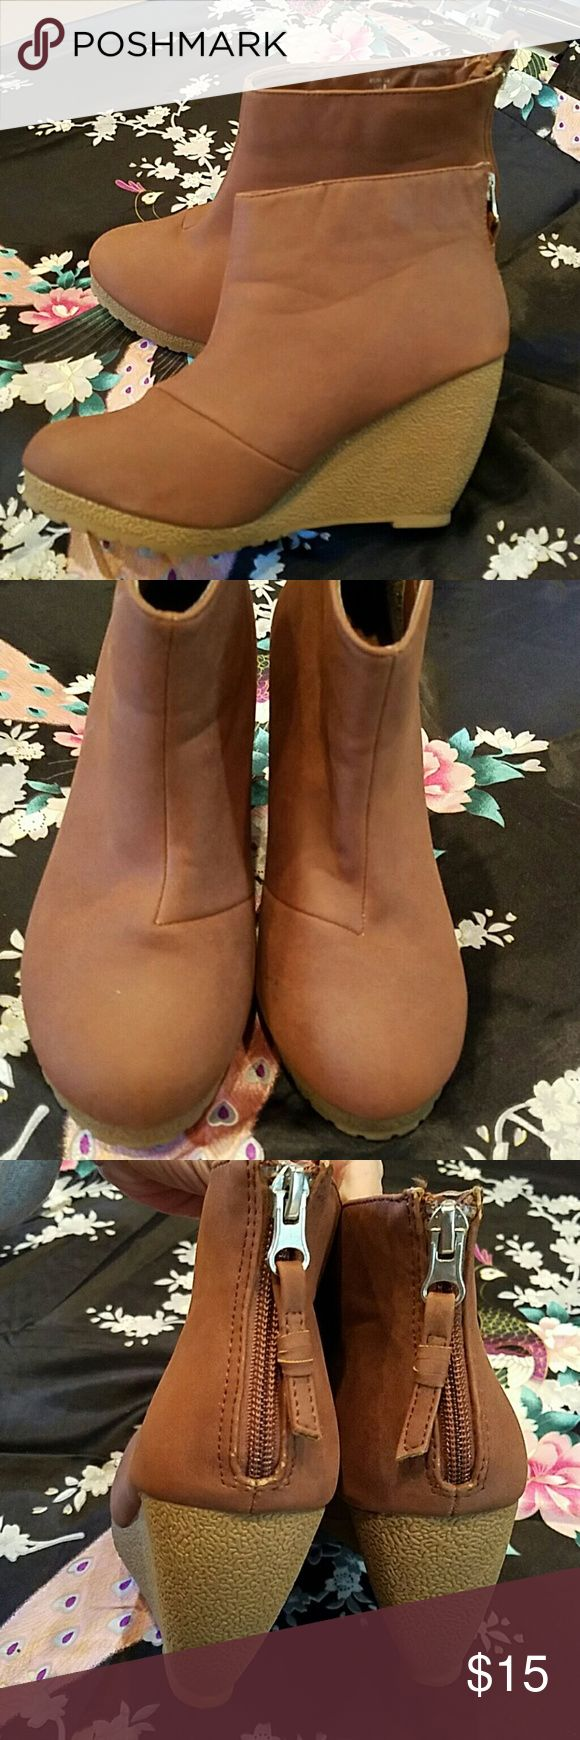 Brown Booties Comfortable Wedge Booties size 8 from H&M. See pics ask questions. H&M Shoes Ankle Boots & Booties